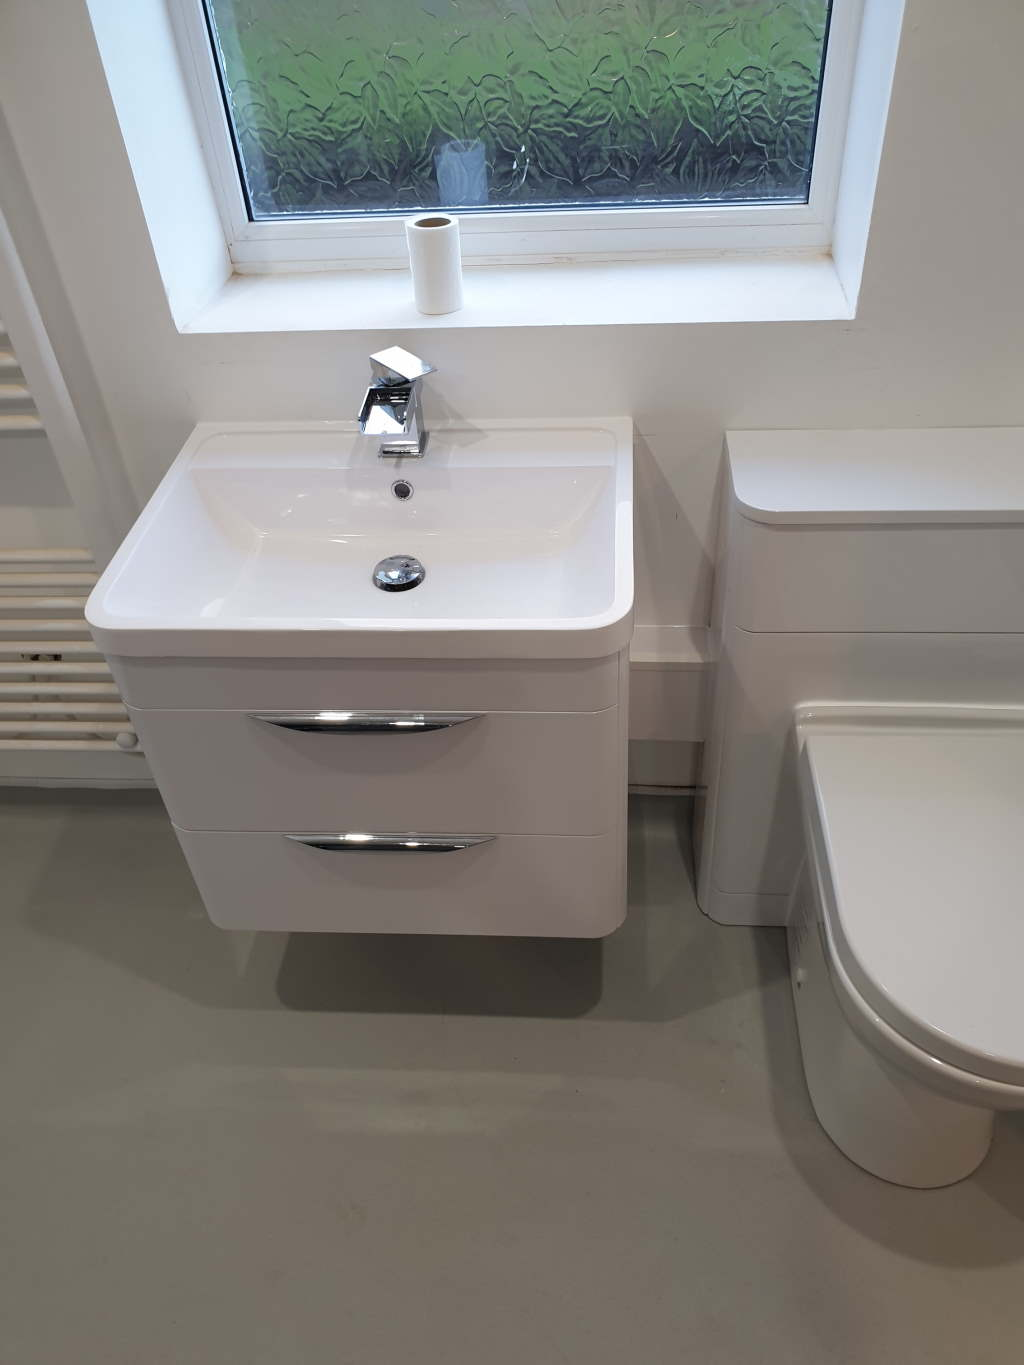 Wetroom Off floor Bathroom Floating sink Unit Mrs Alvery Nottingham